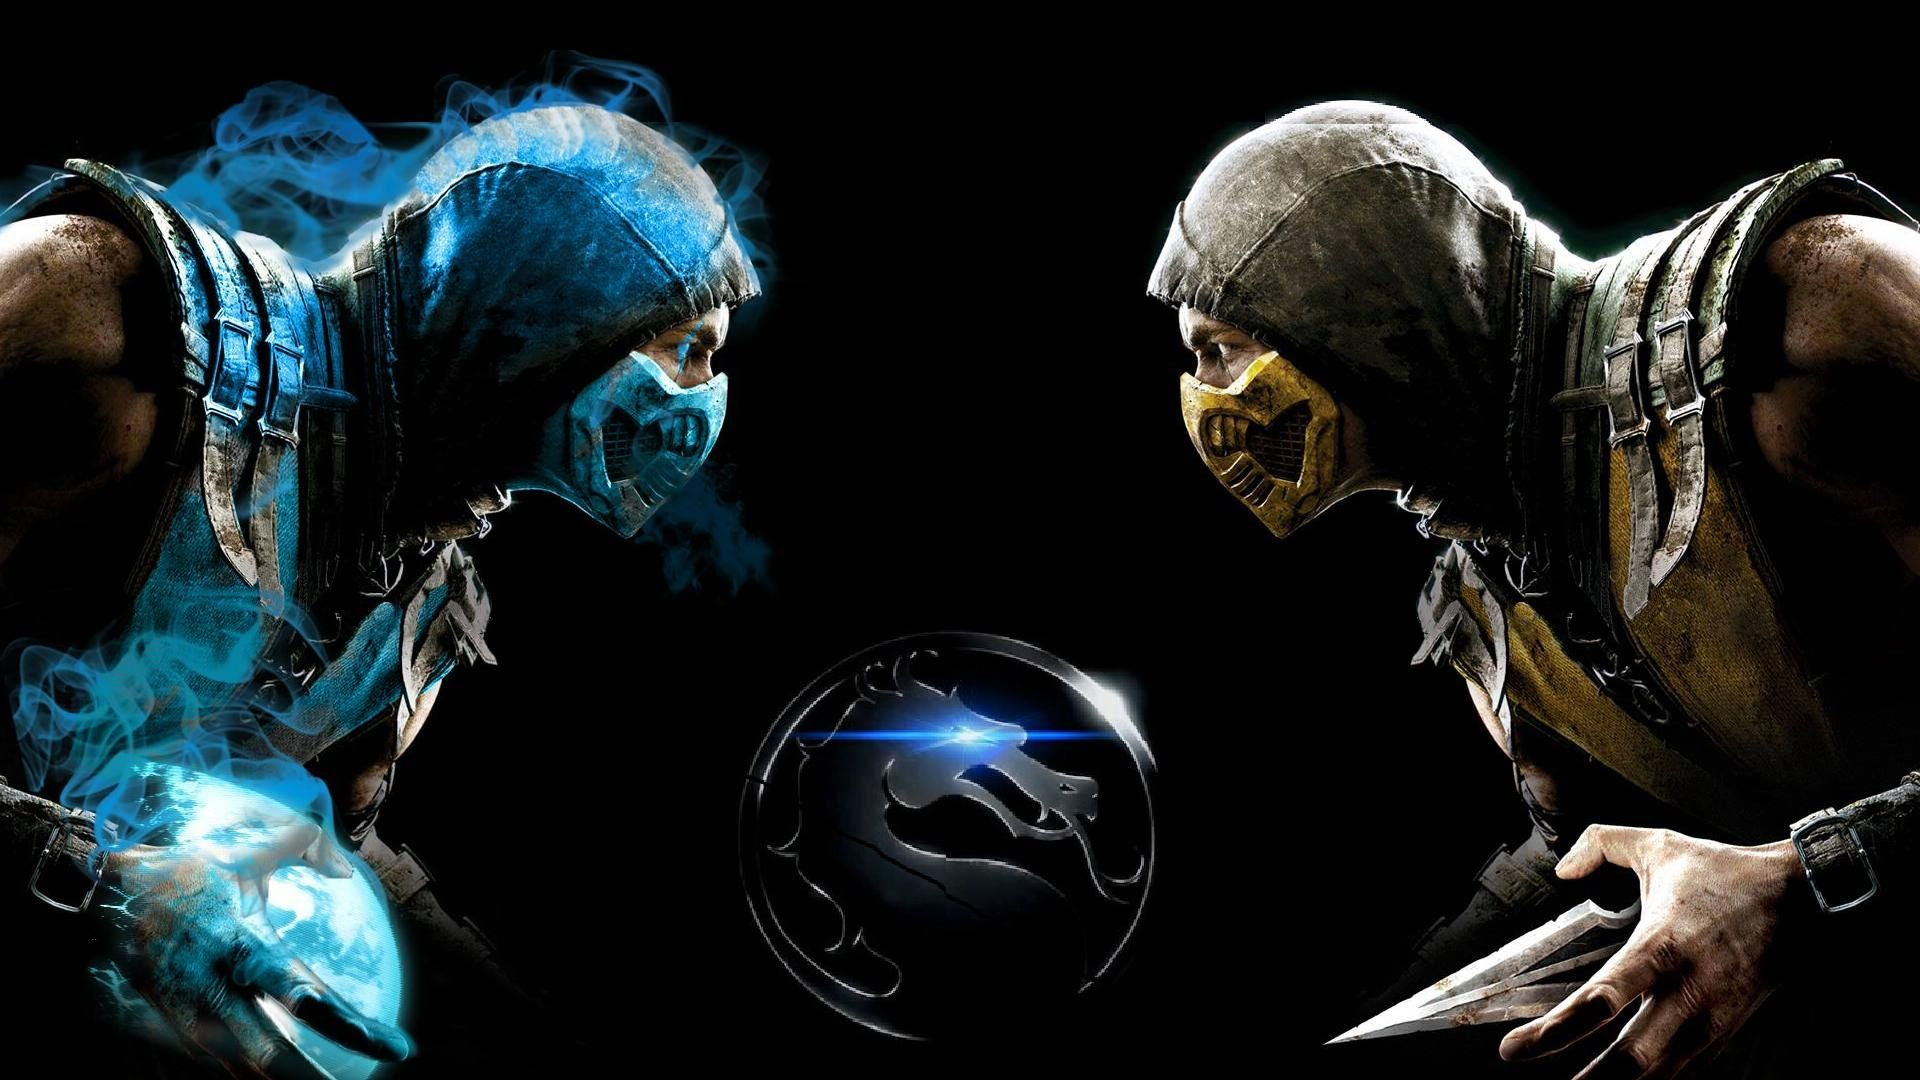 Mortal Kombat X Gameplay Scorpion Vs Sub Zero Youtube